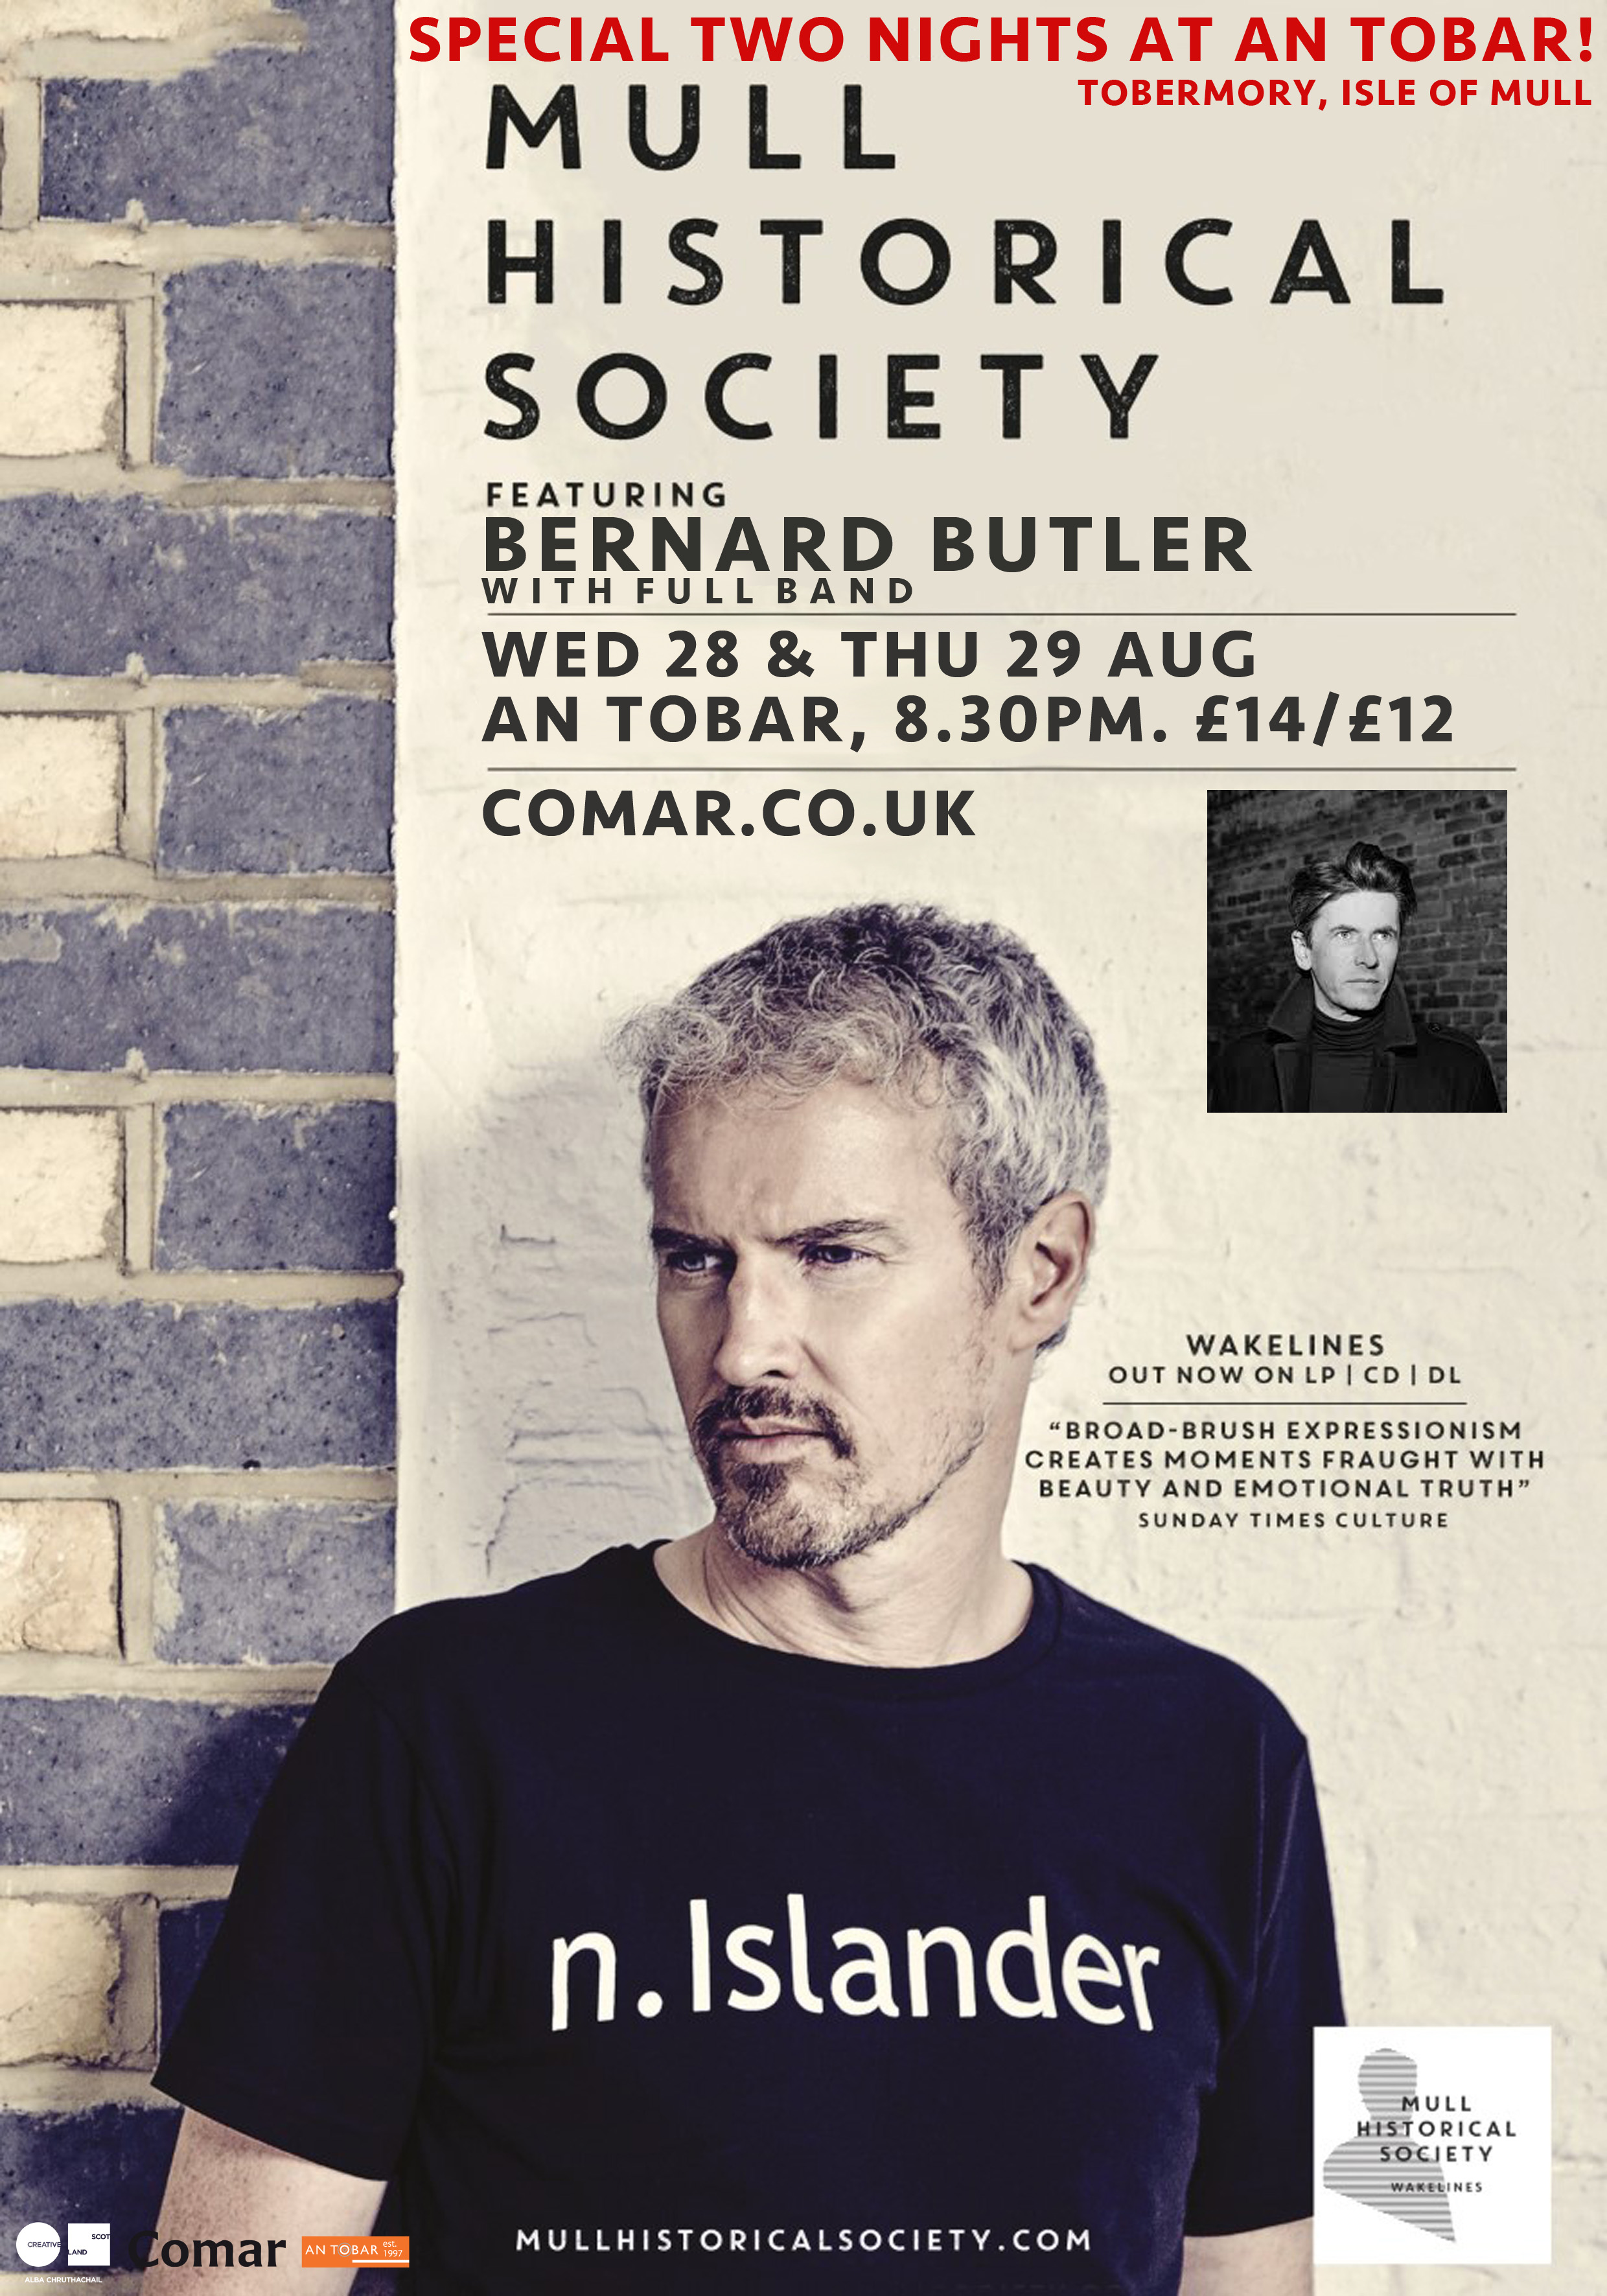 Mull Historical Society 2 special nights at An Tobar, Tobermory, Isle of Mull – with special guest Bernard Butler!